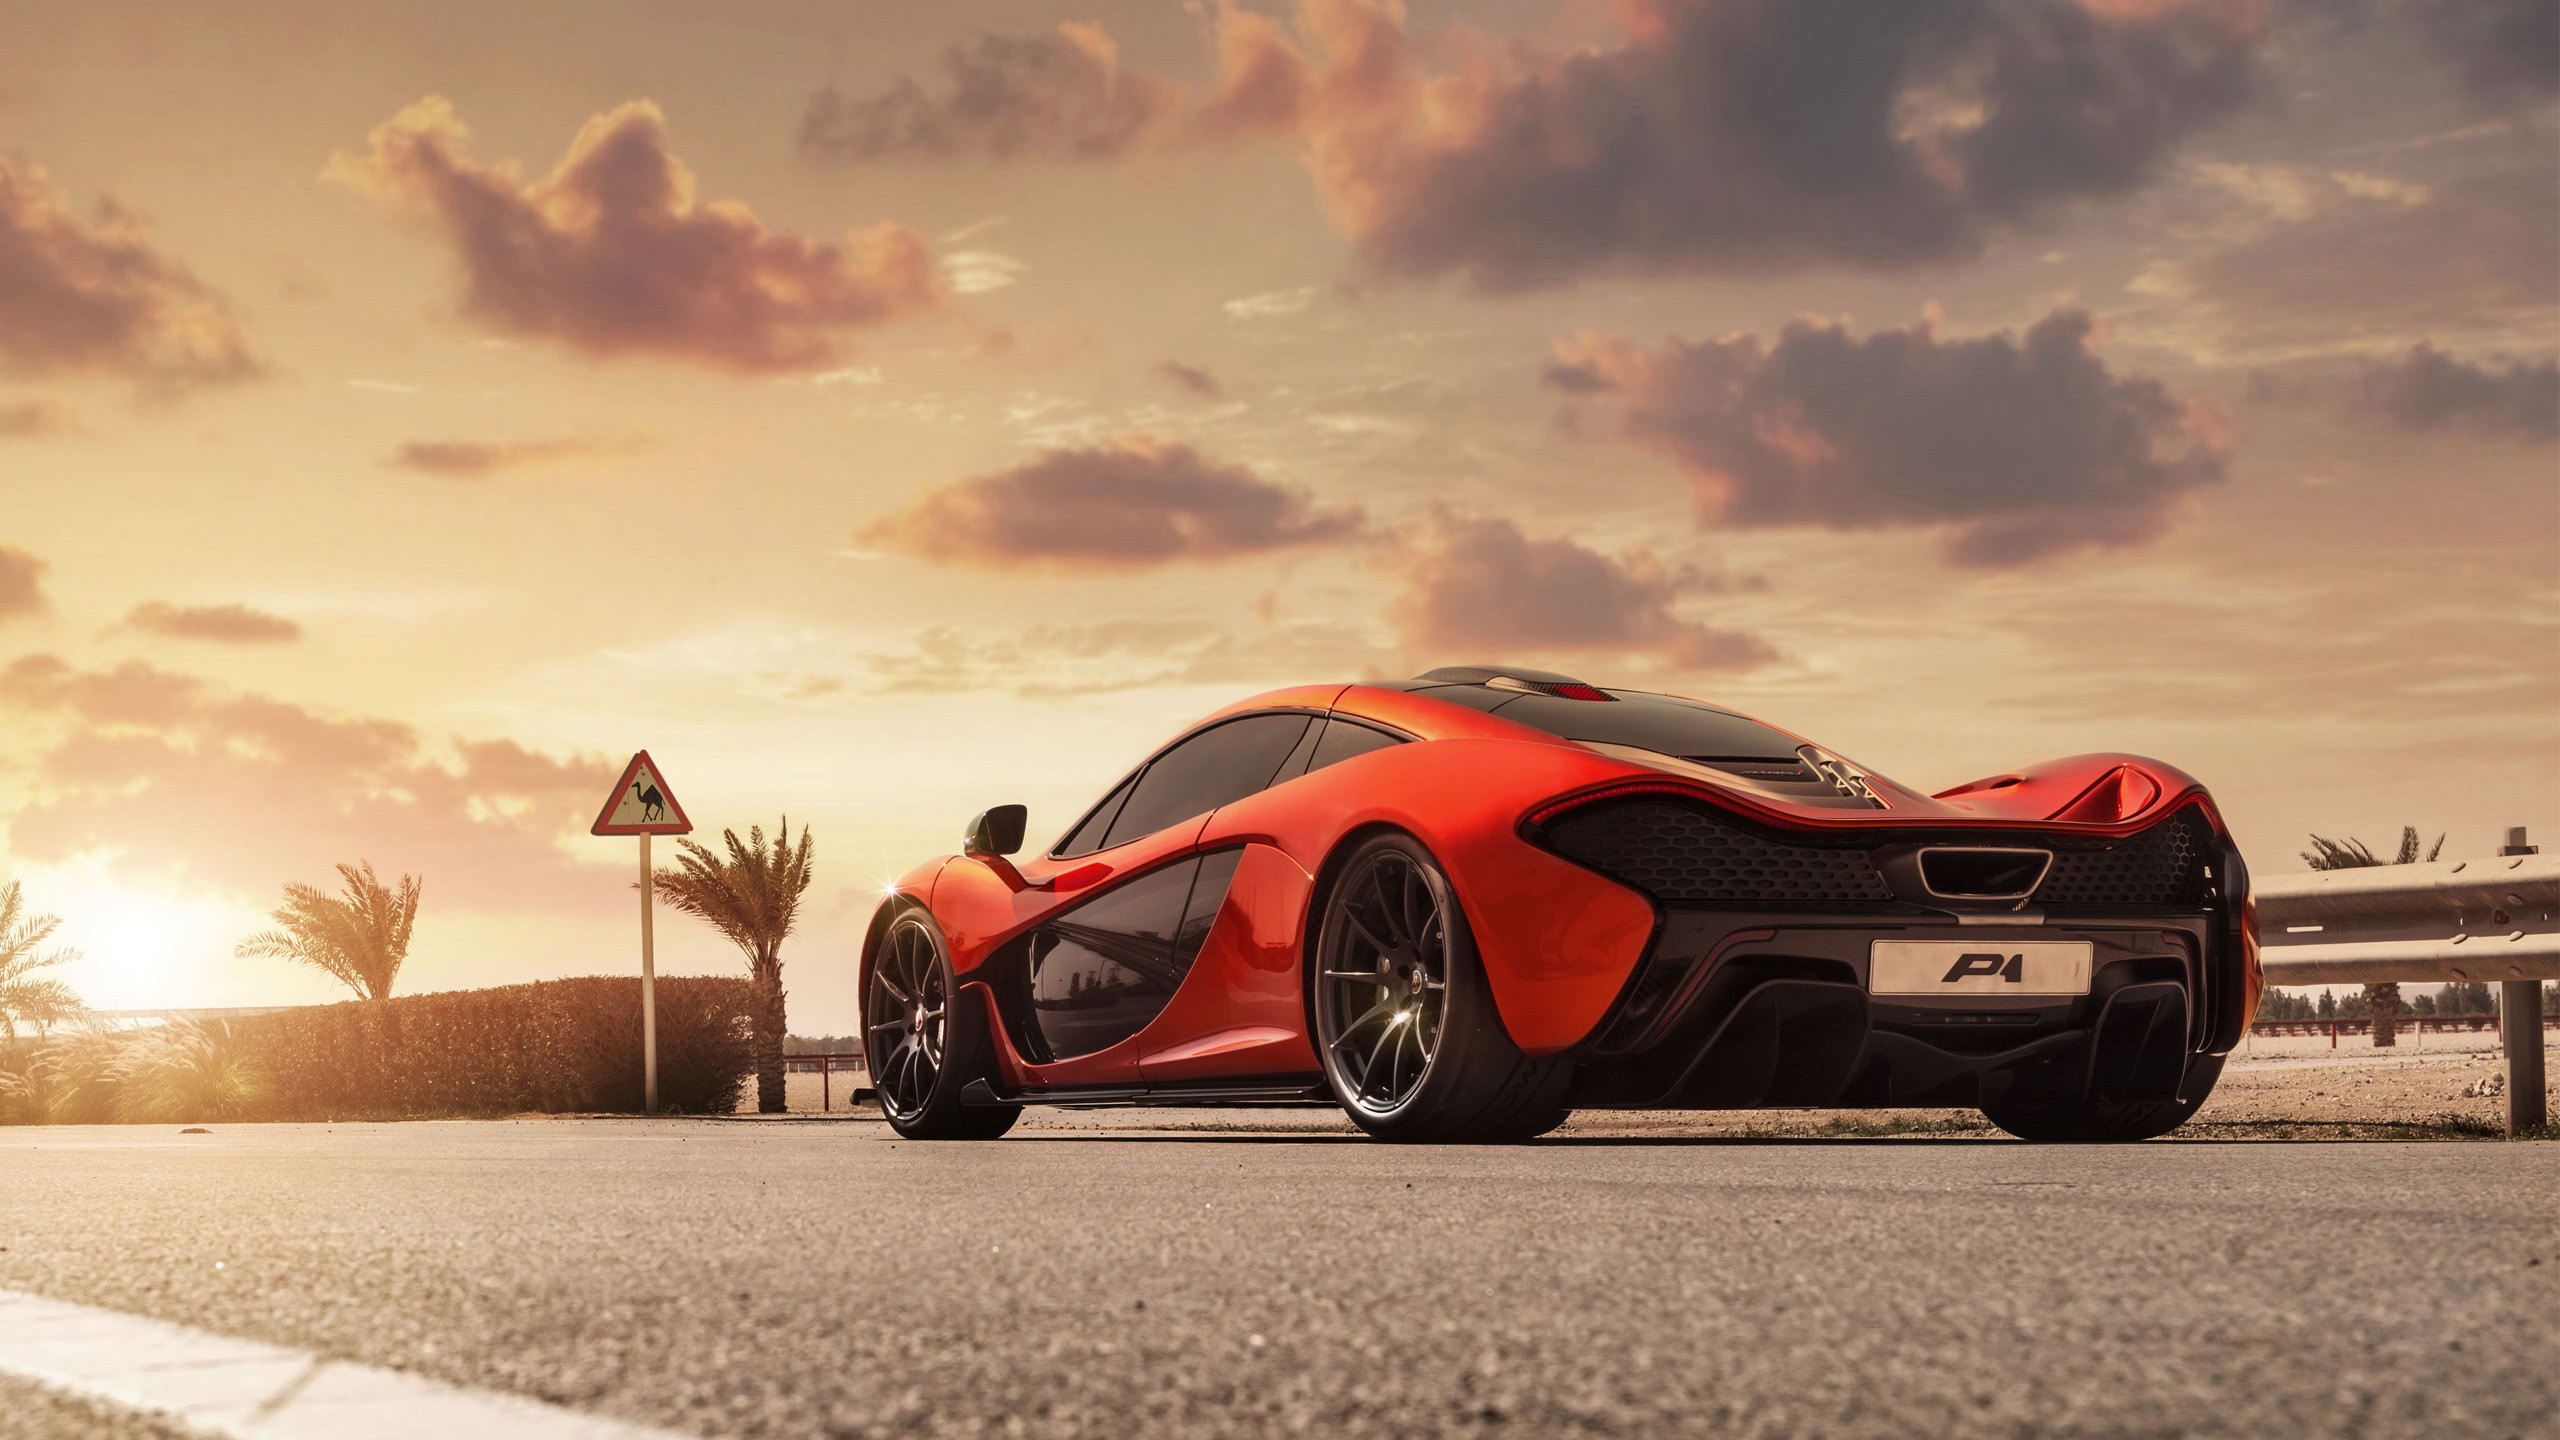 cars wallpapers free download hd amazing new latest - HD 2560×1440